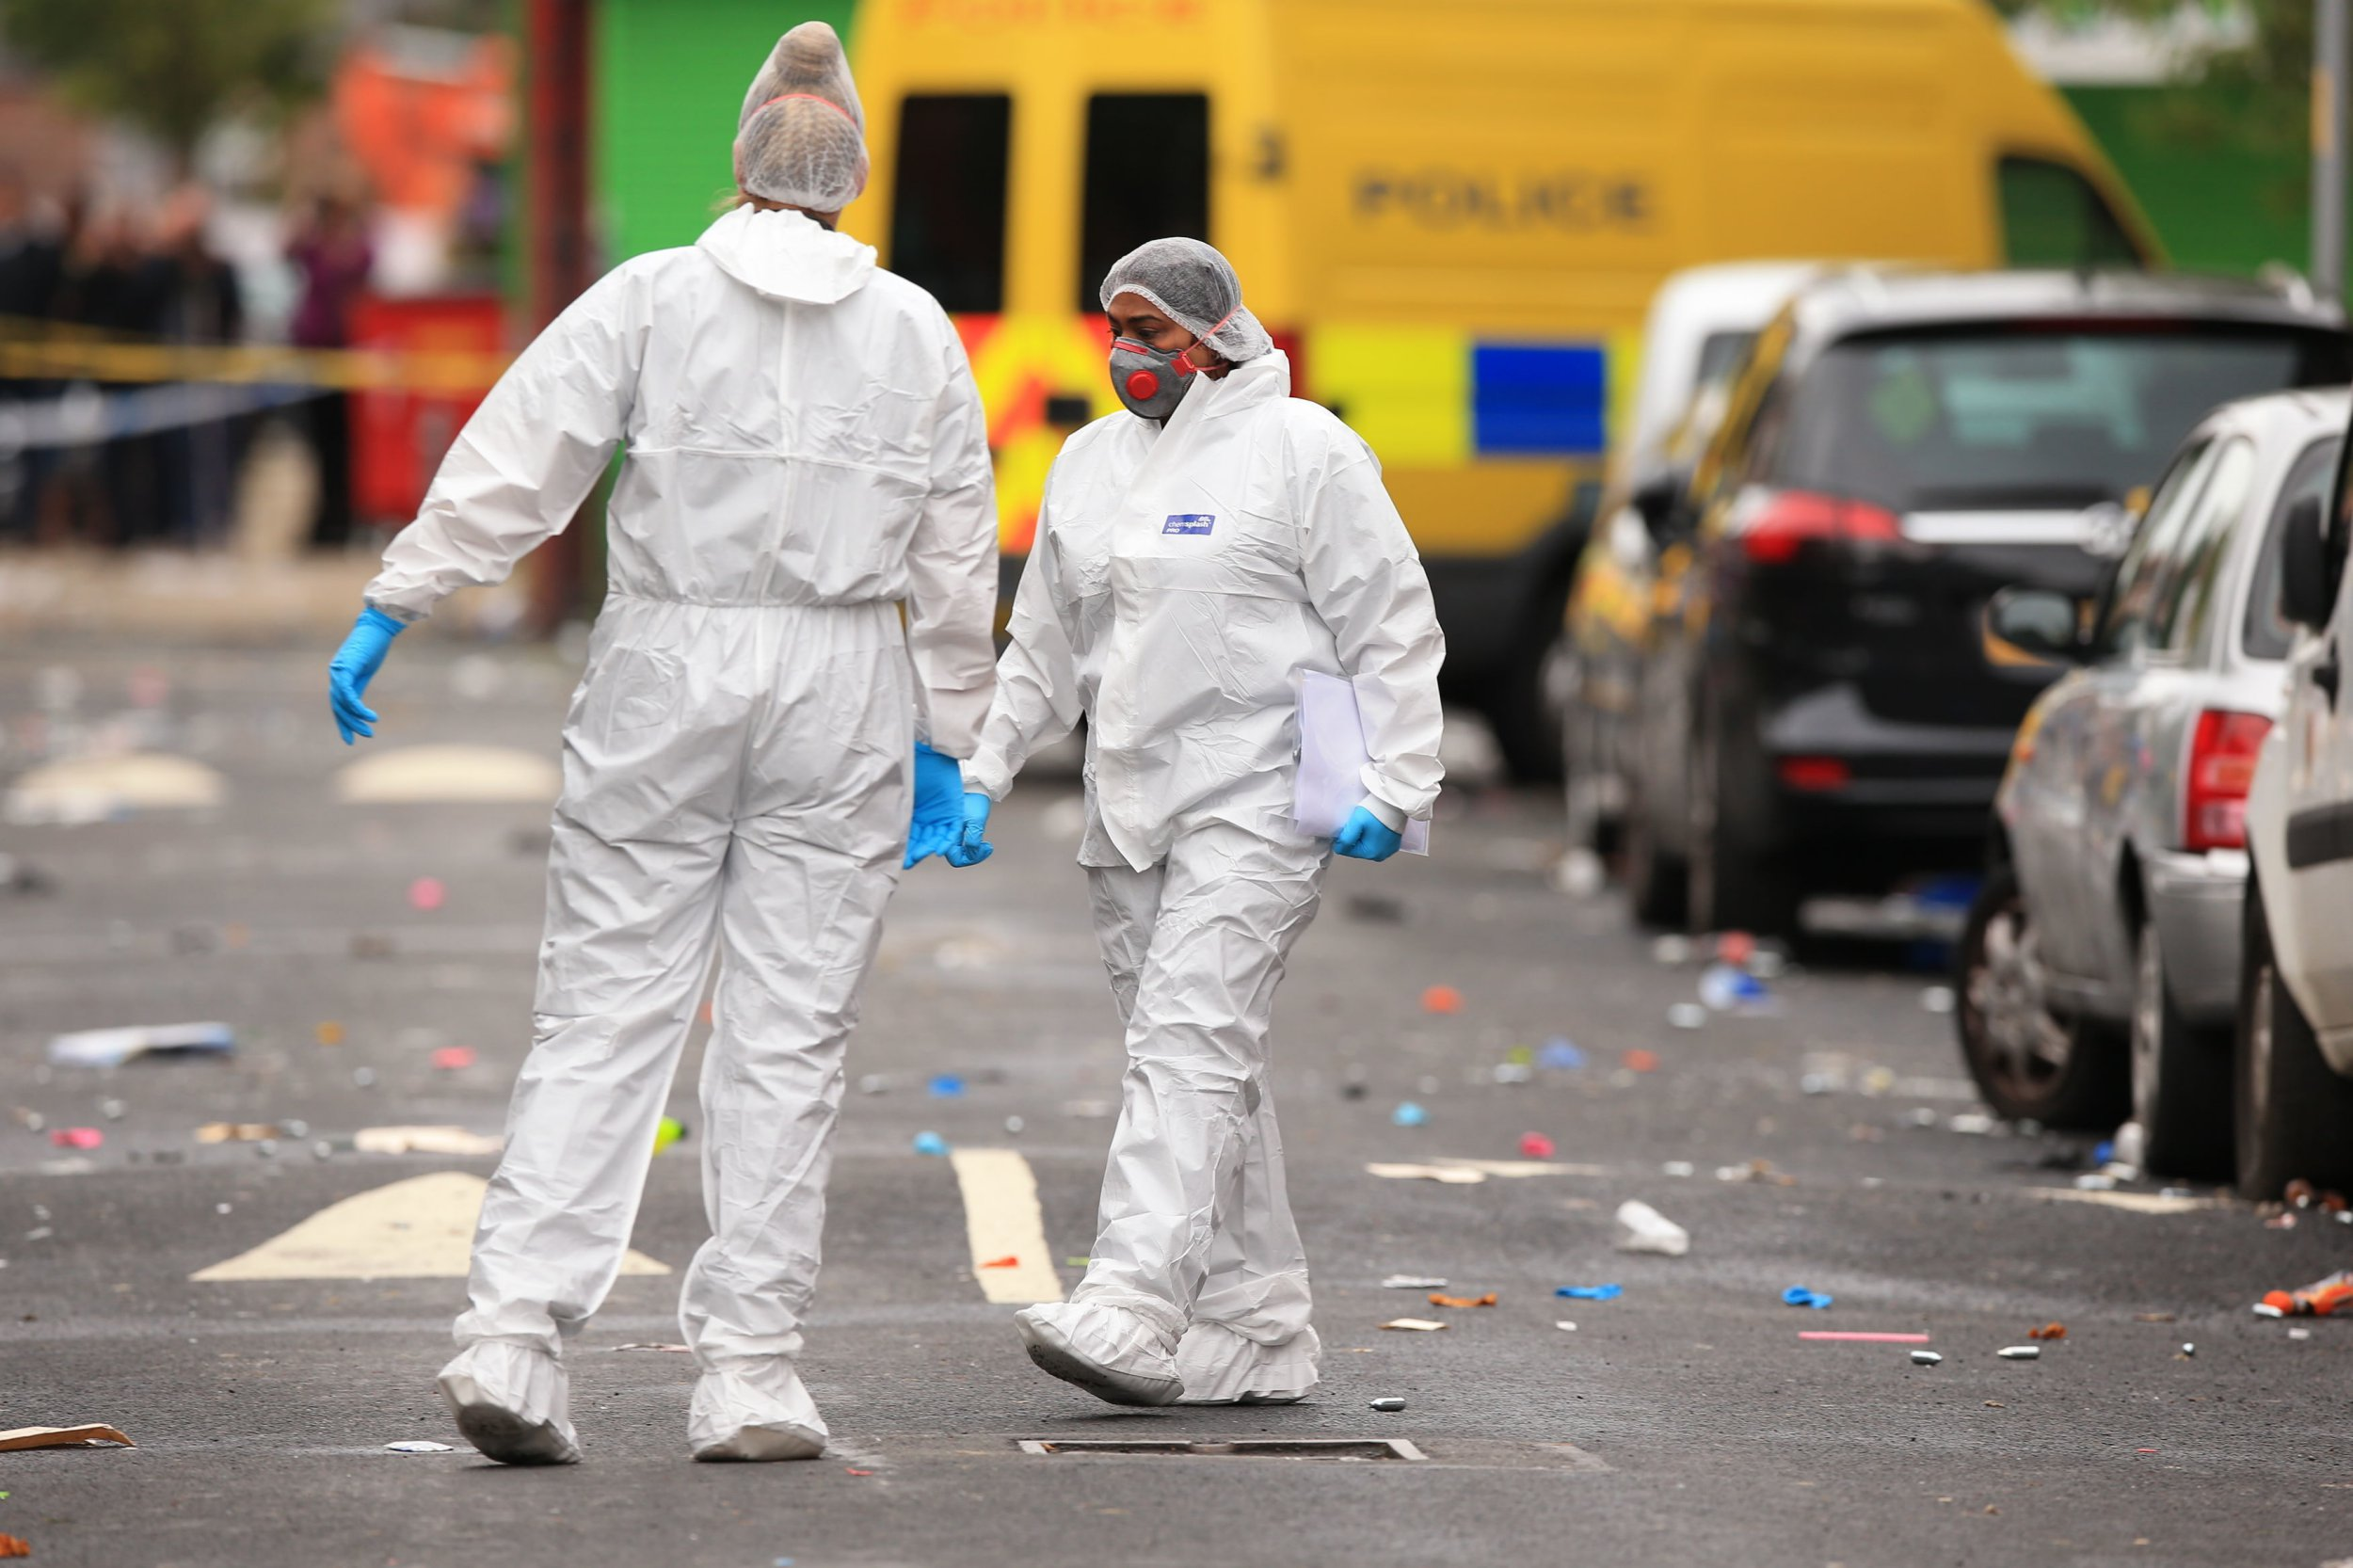 Forensics officers at the scene in Claremont Road, Moss Side, Manchester, where several people have been injured after a shooting. PRESS ASSOCIATION Photo. Picture date: Sunday August 12, 2018. Armed officers were called at 2.30am on Sunday following the celebrations of the Caribbean Carnival. See PA story POLICE Shooting. Photo credit should read: Peter Byrne/PA Wire